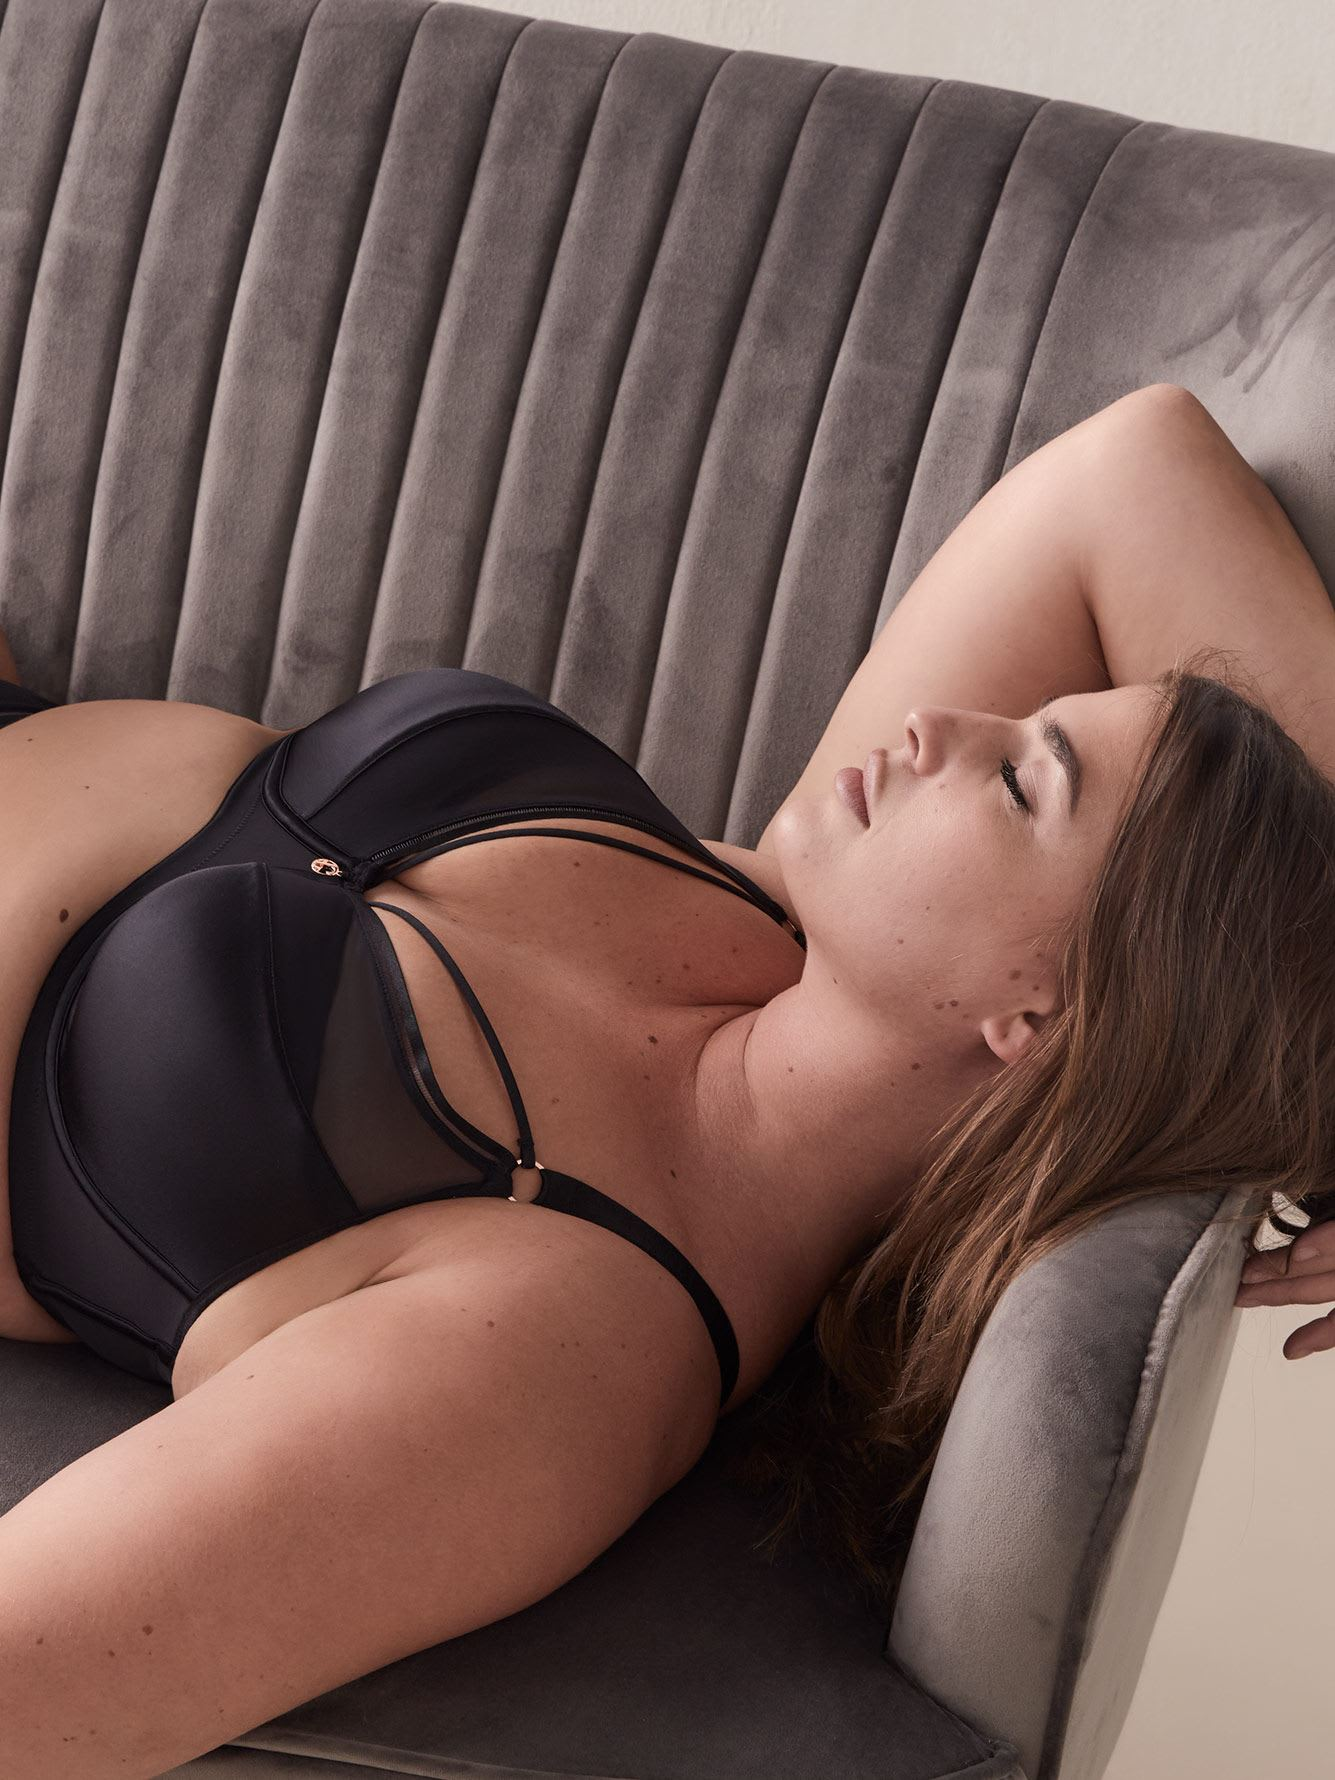 Diva Demi Cup Bra - Ashley Graham